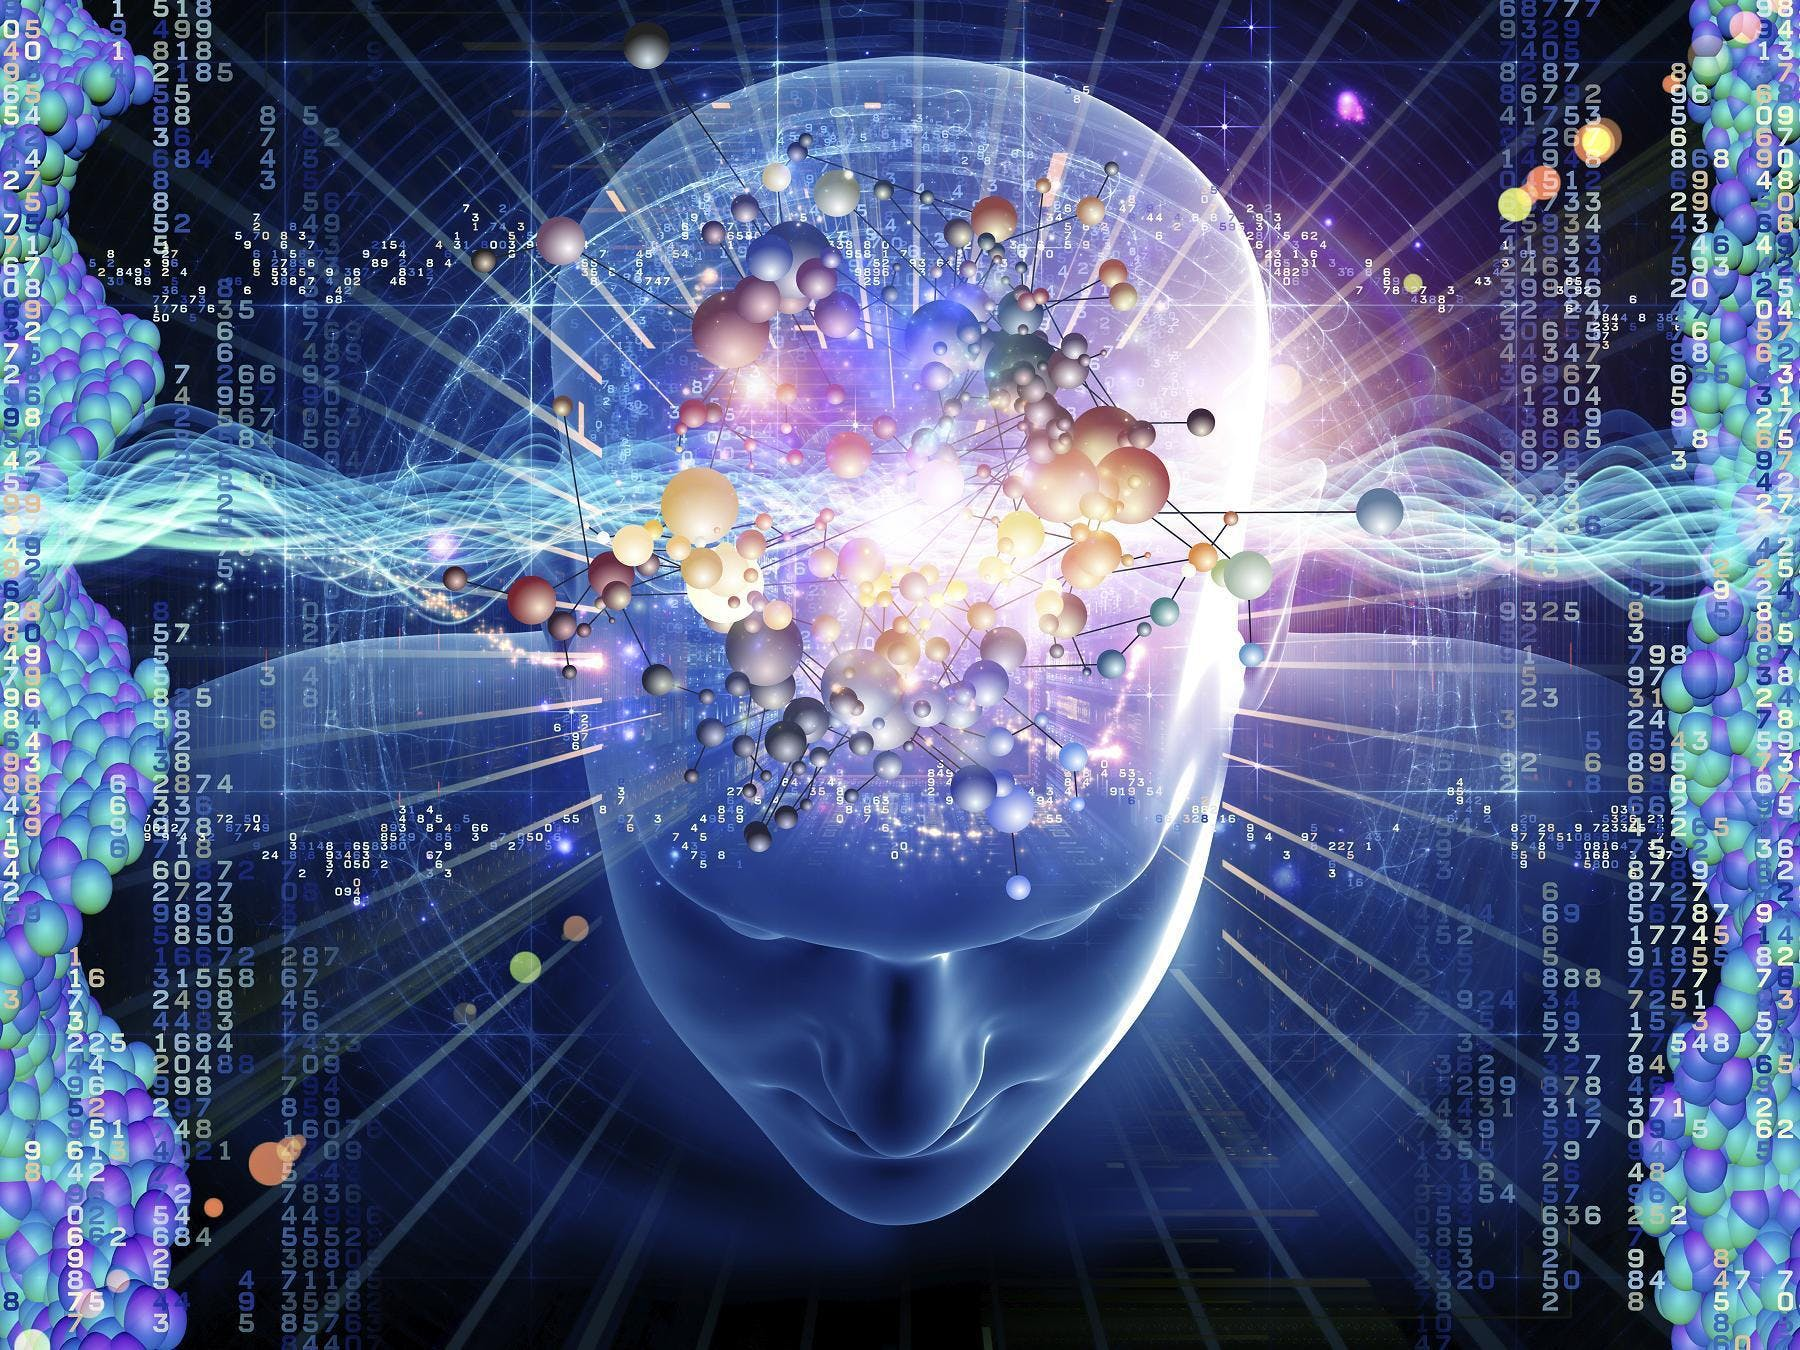 Is Elon Musk Creating a Mind Control Device?